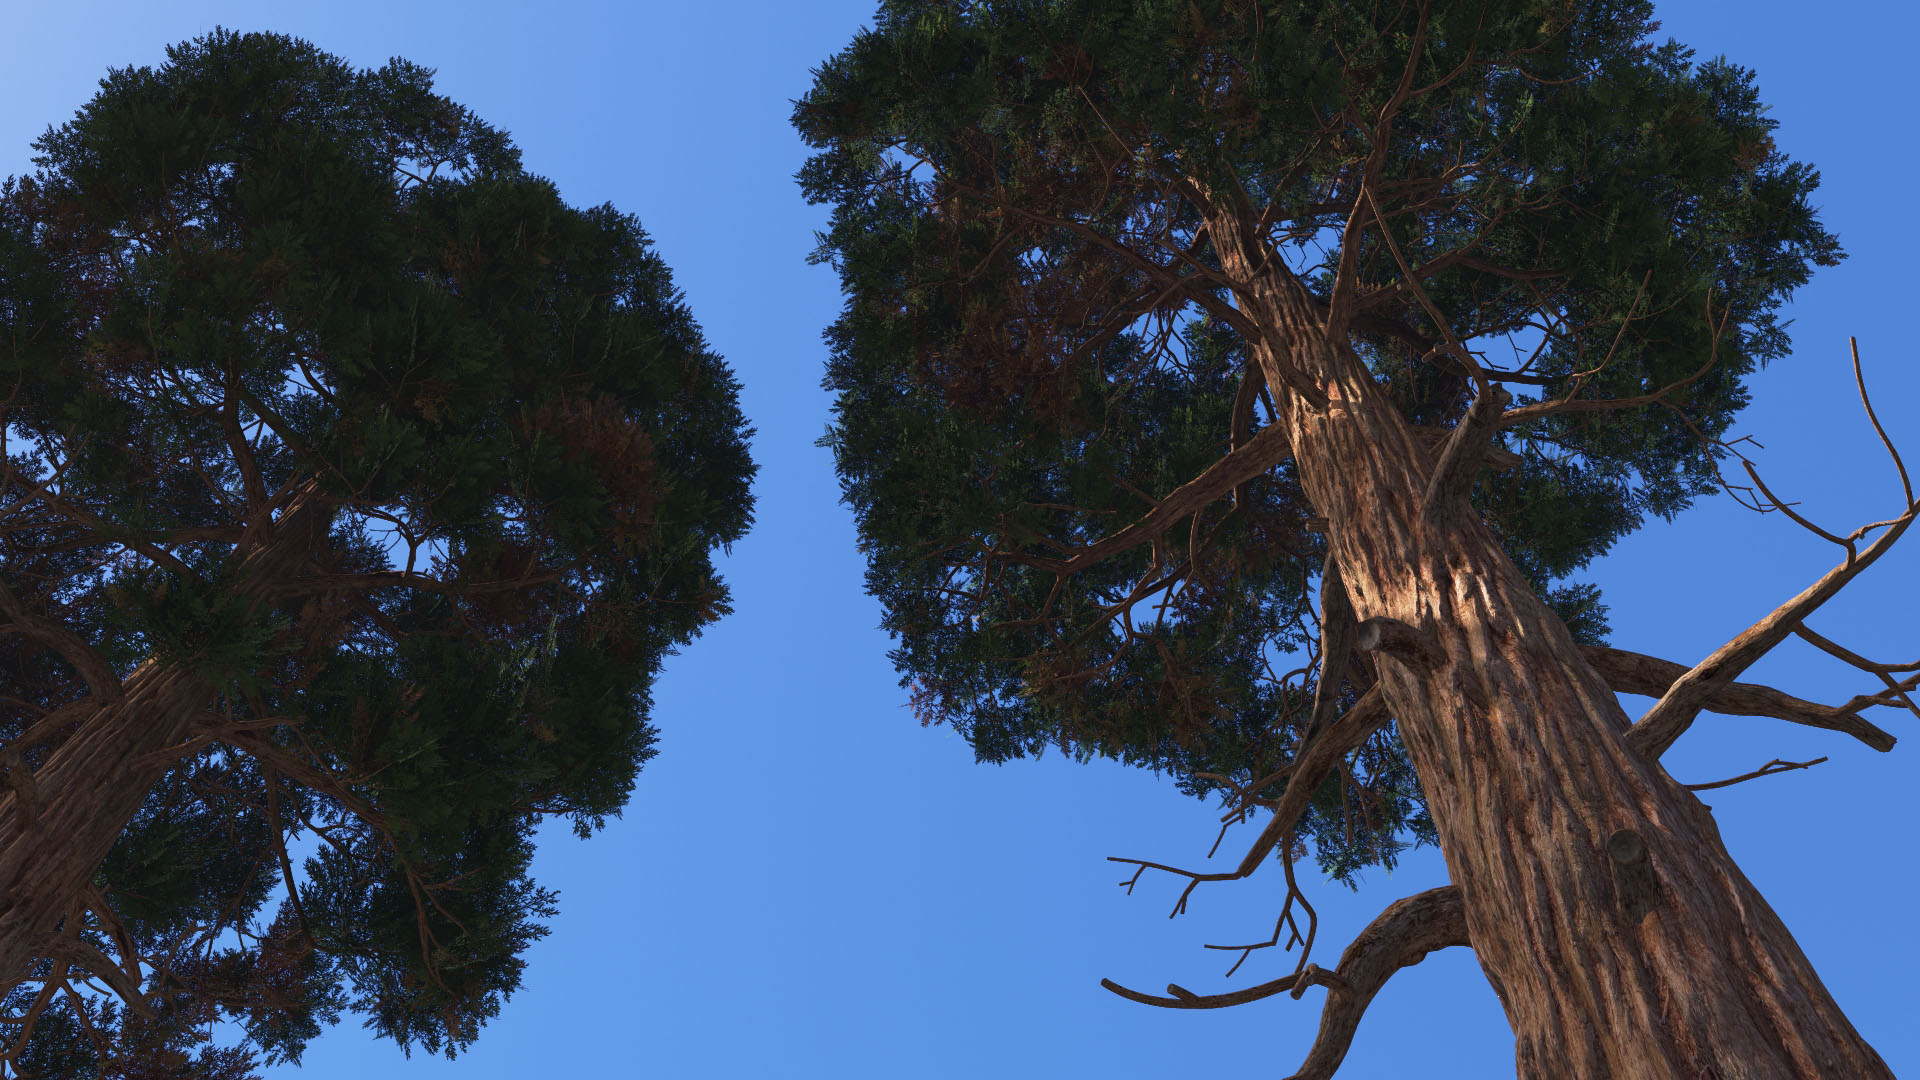 3D model of the Giant sequoia Sequoiadendron giganteum close-up